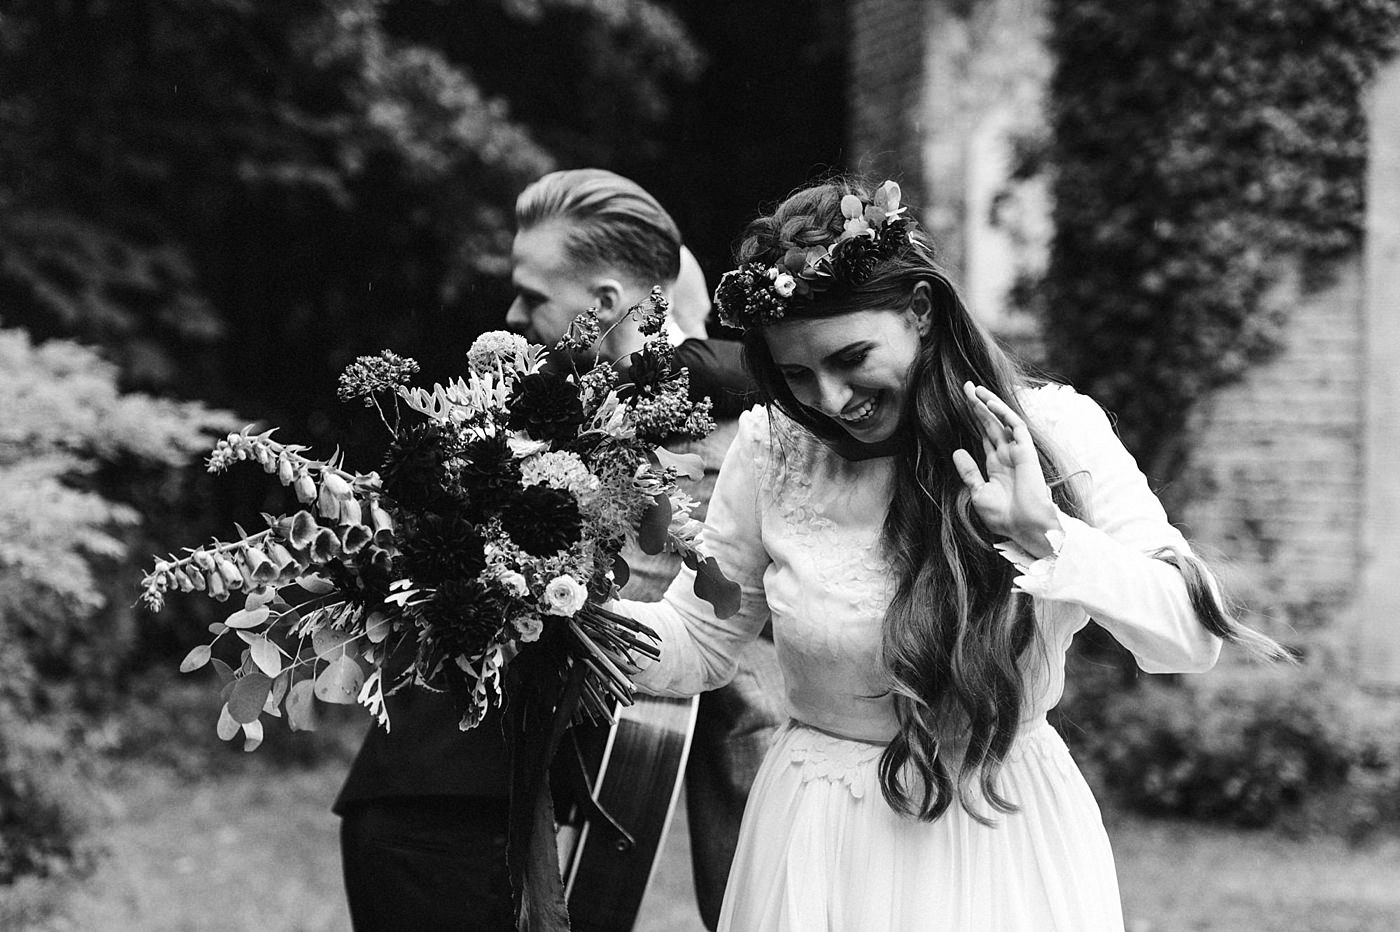 urban-elopement-wedding-129 Merve & Nils emotionales Elopement - Wedding Wesel & Schottlandurban elopement wedding 129 1